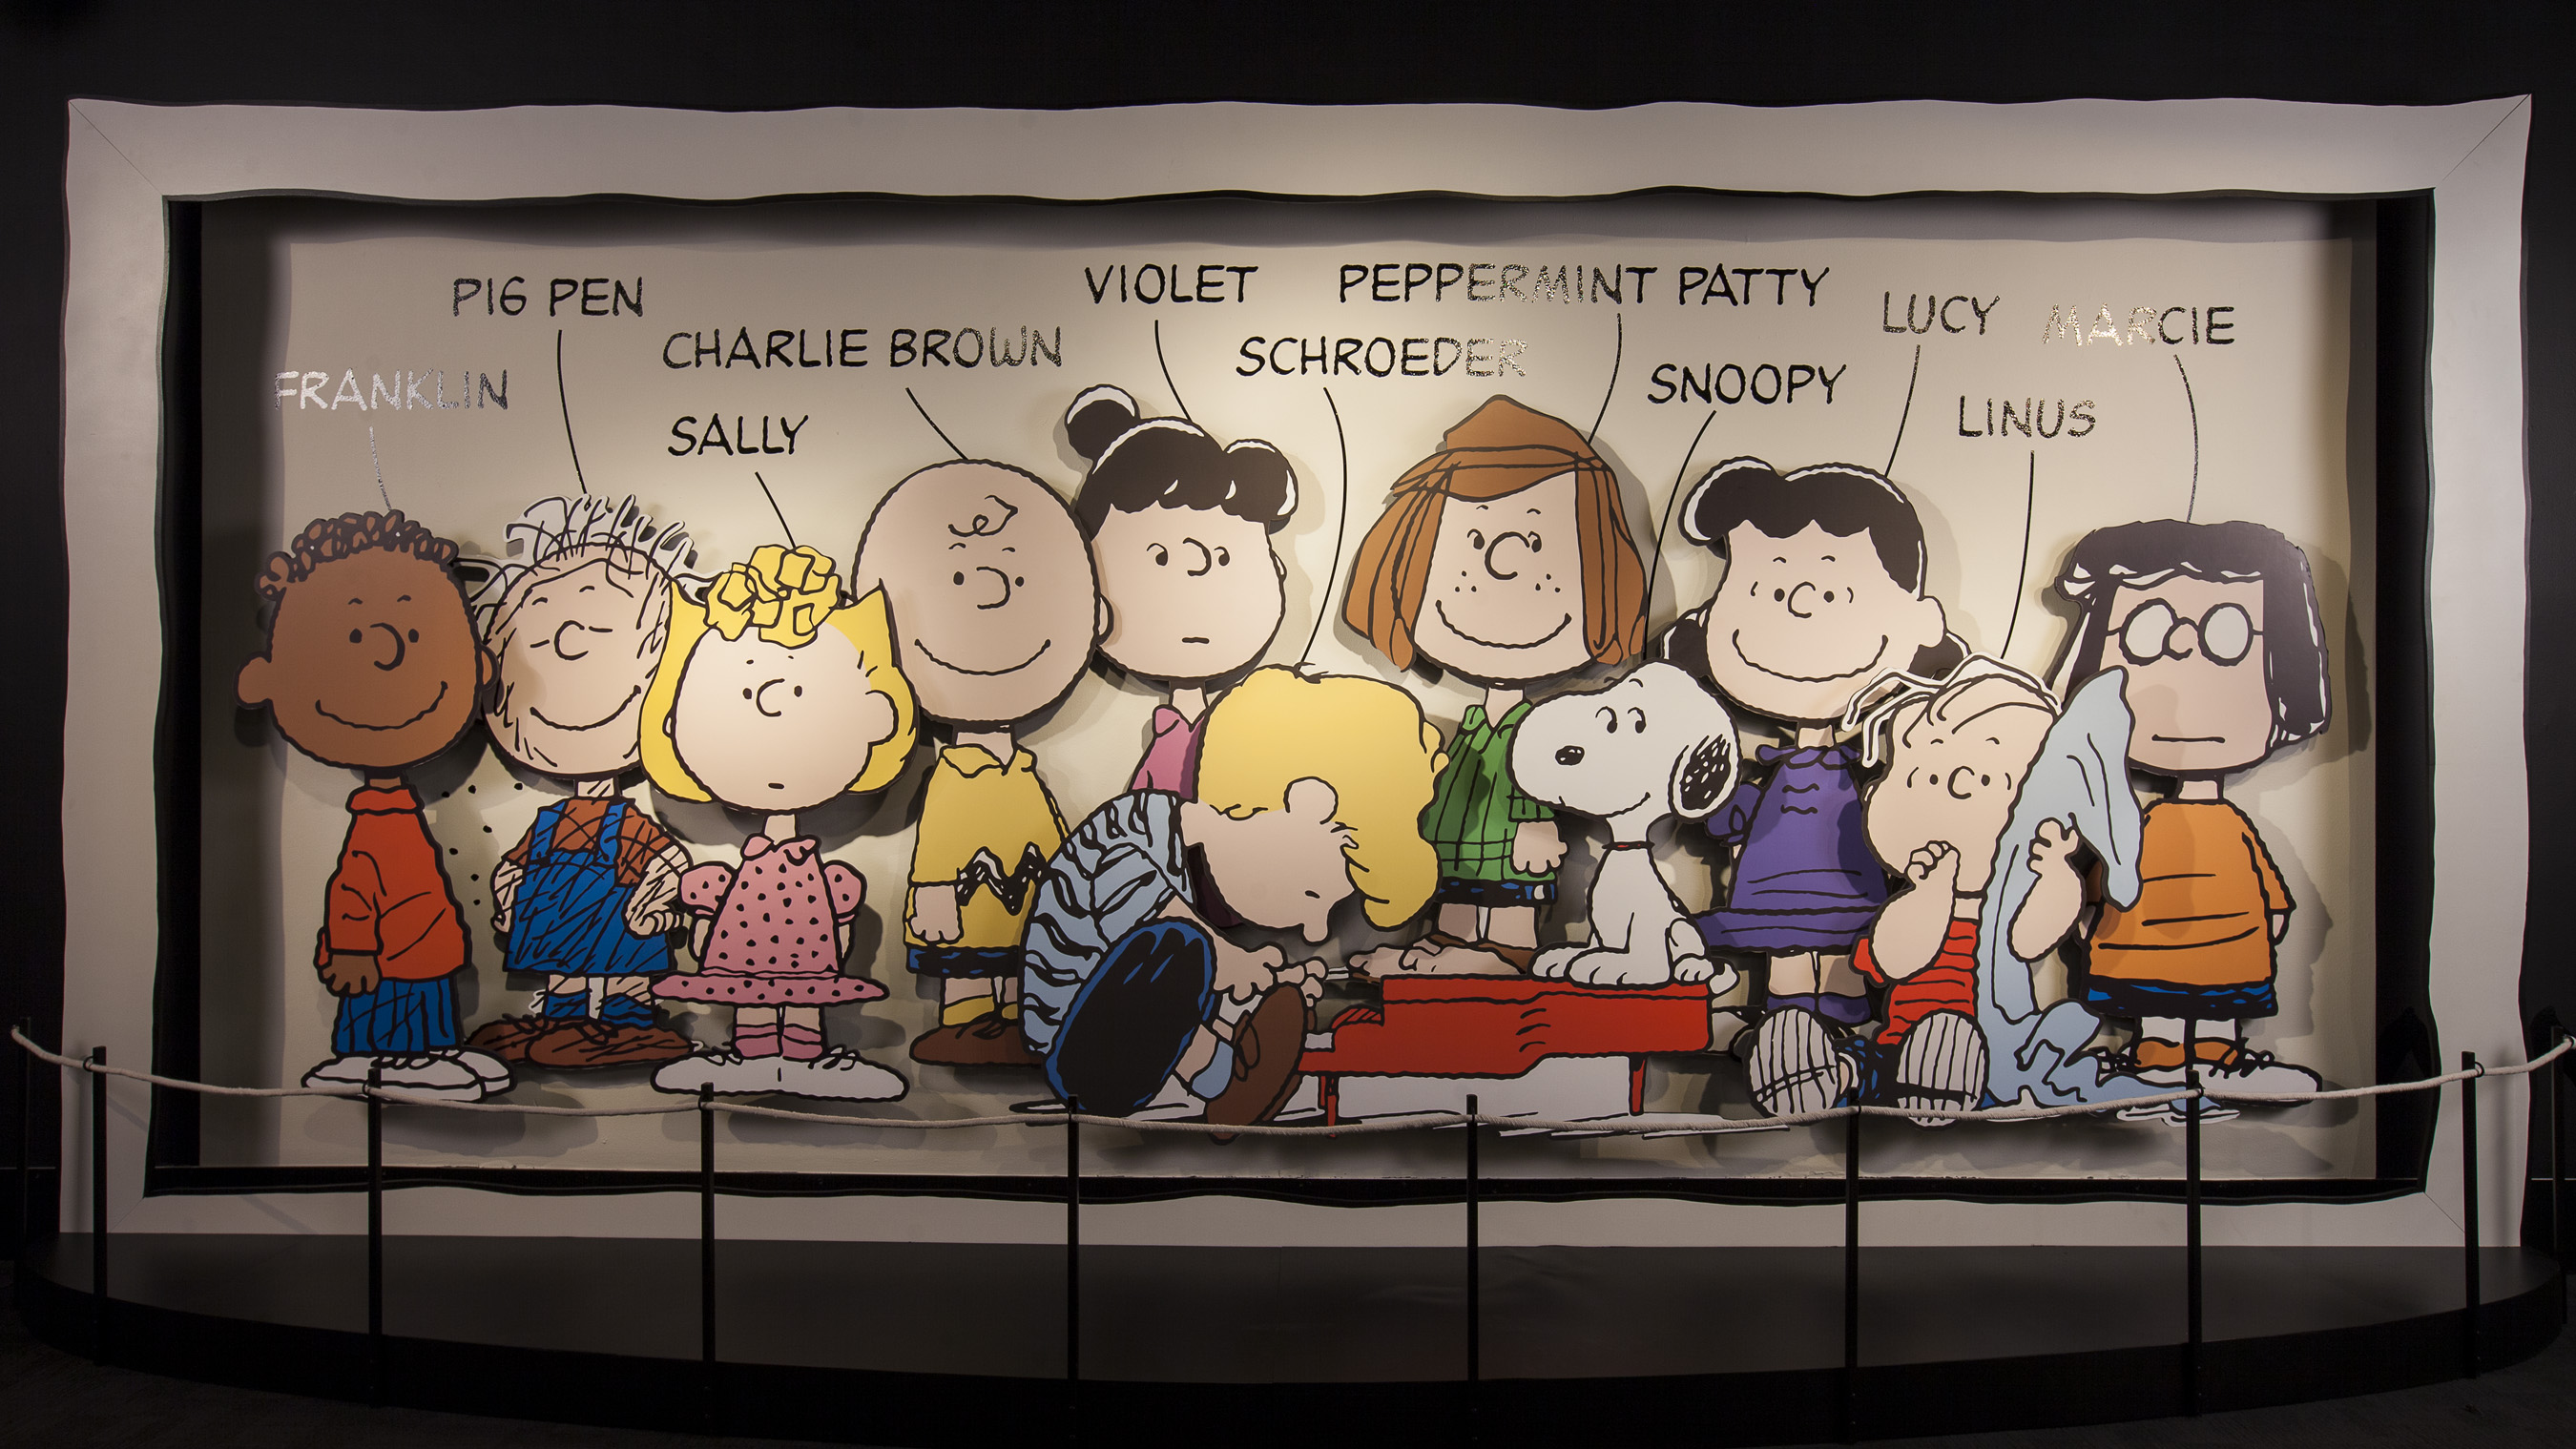 CHARLIE BROWN peanuts comics wallpaper